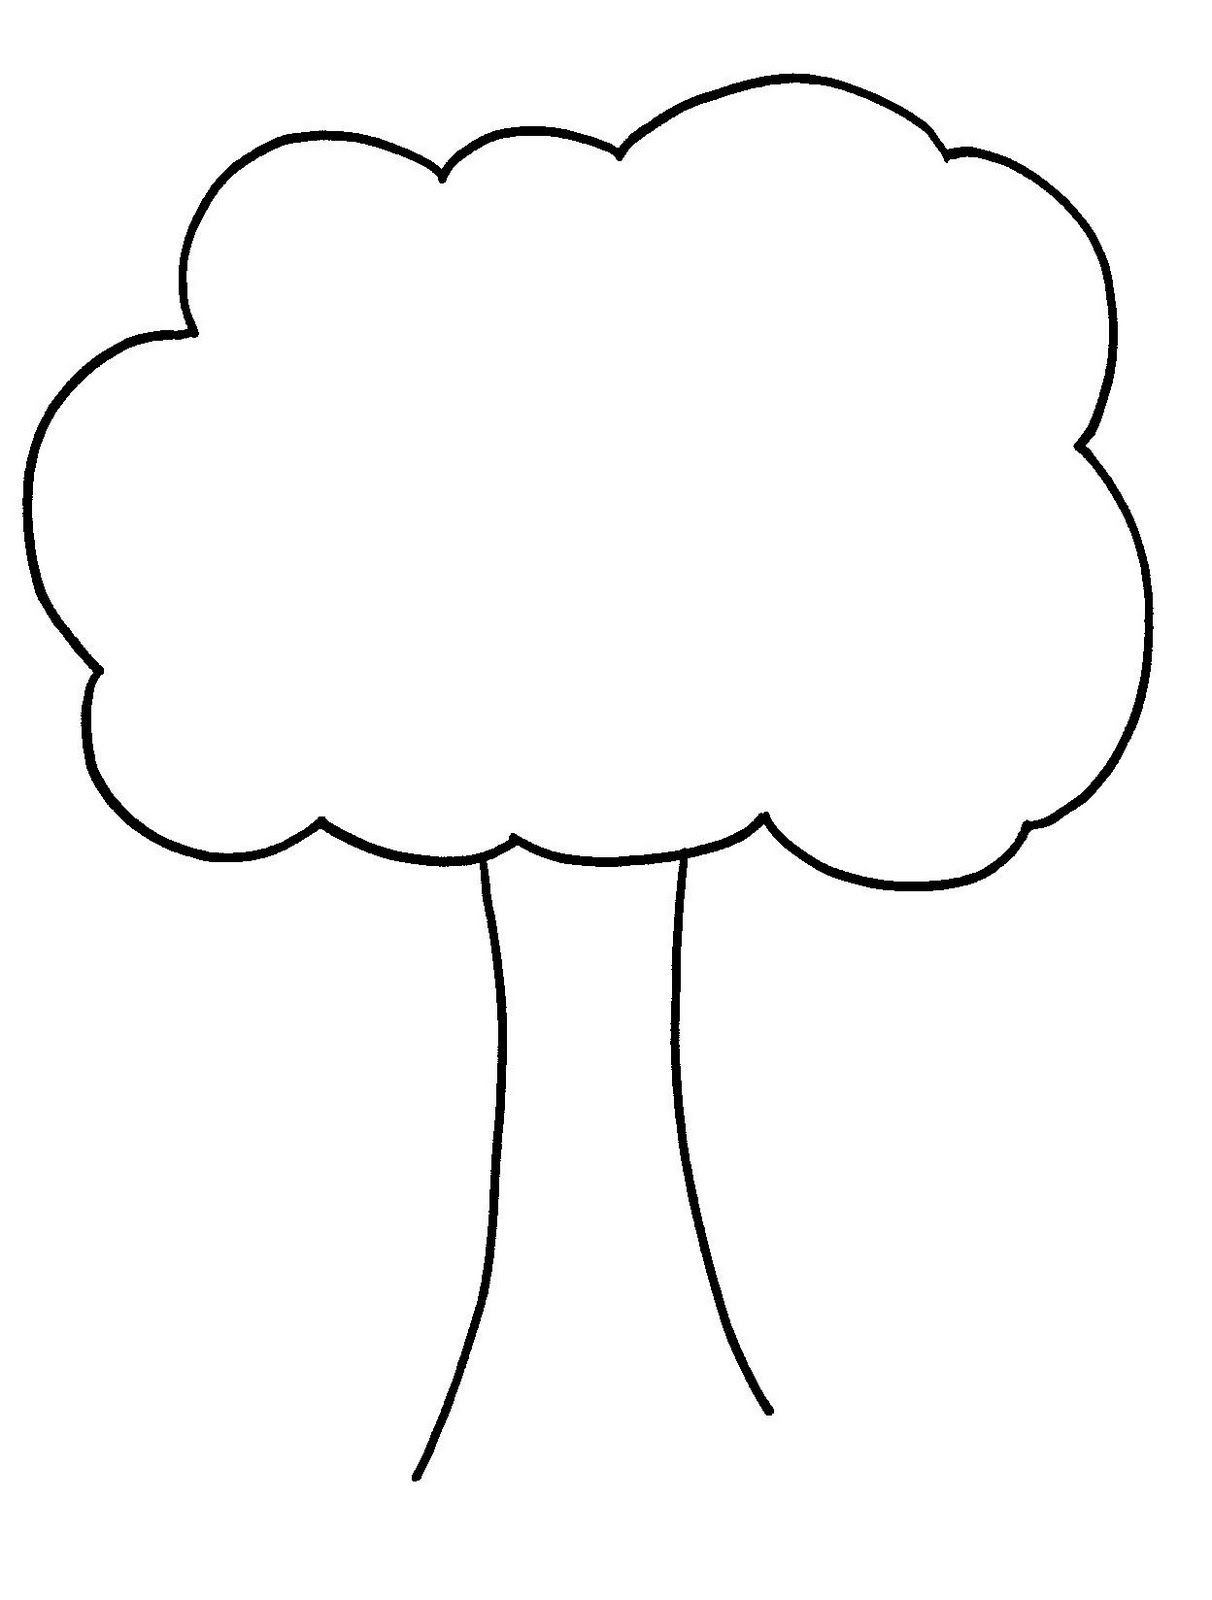 Free black and white clipart of young trees clip art freeuse Clip Art Tree Outline Clipart Panda Free Clipart Images | Hands On ... clip art freeuse